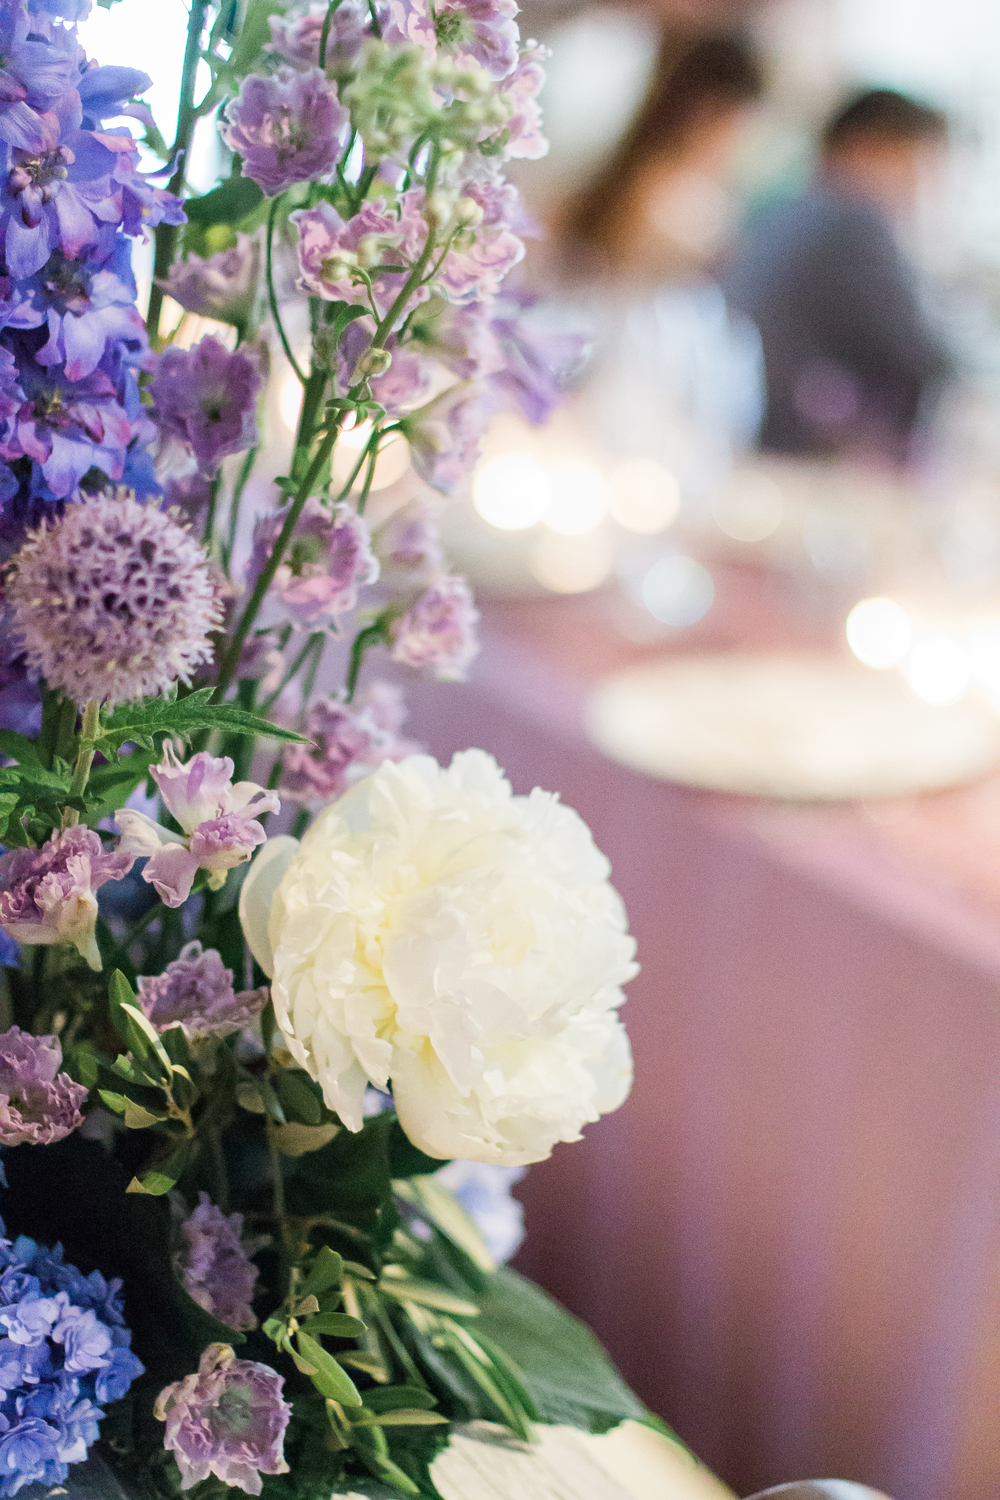 lilac, lavender & periwinkle luxury wedding at cannon green charleston by scarlet plan & design for revolution wedding tours (151).jpg